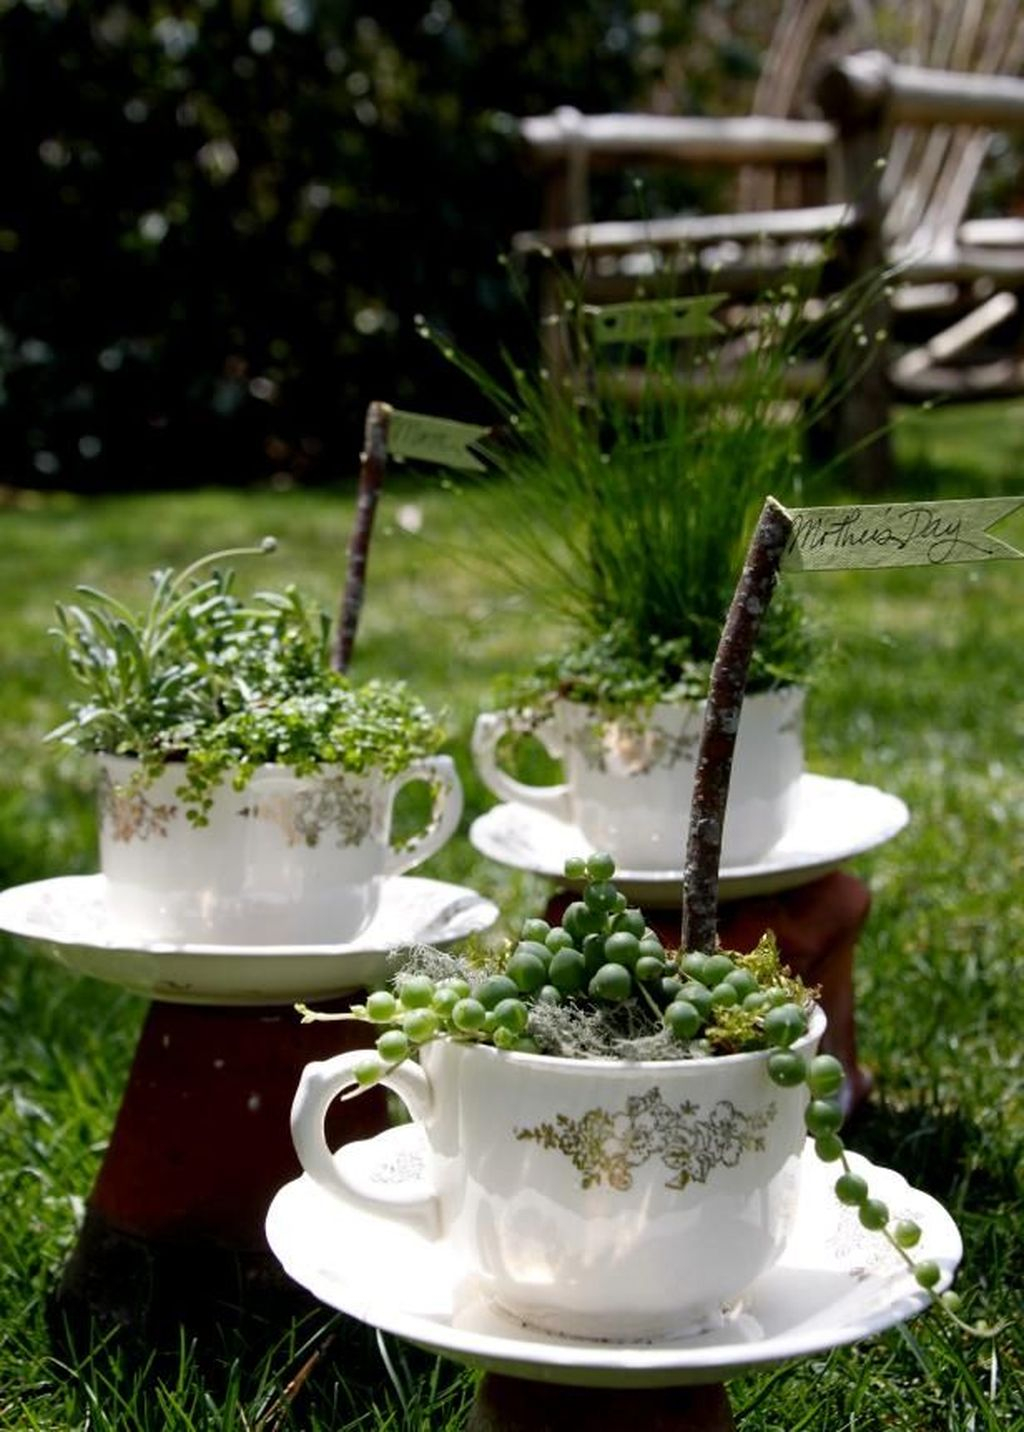 Inspiring Diy Teacup Mini Garden Ideas To Add Bliss To Your Home 06